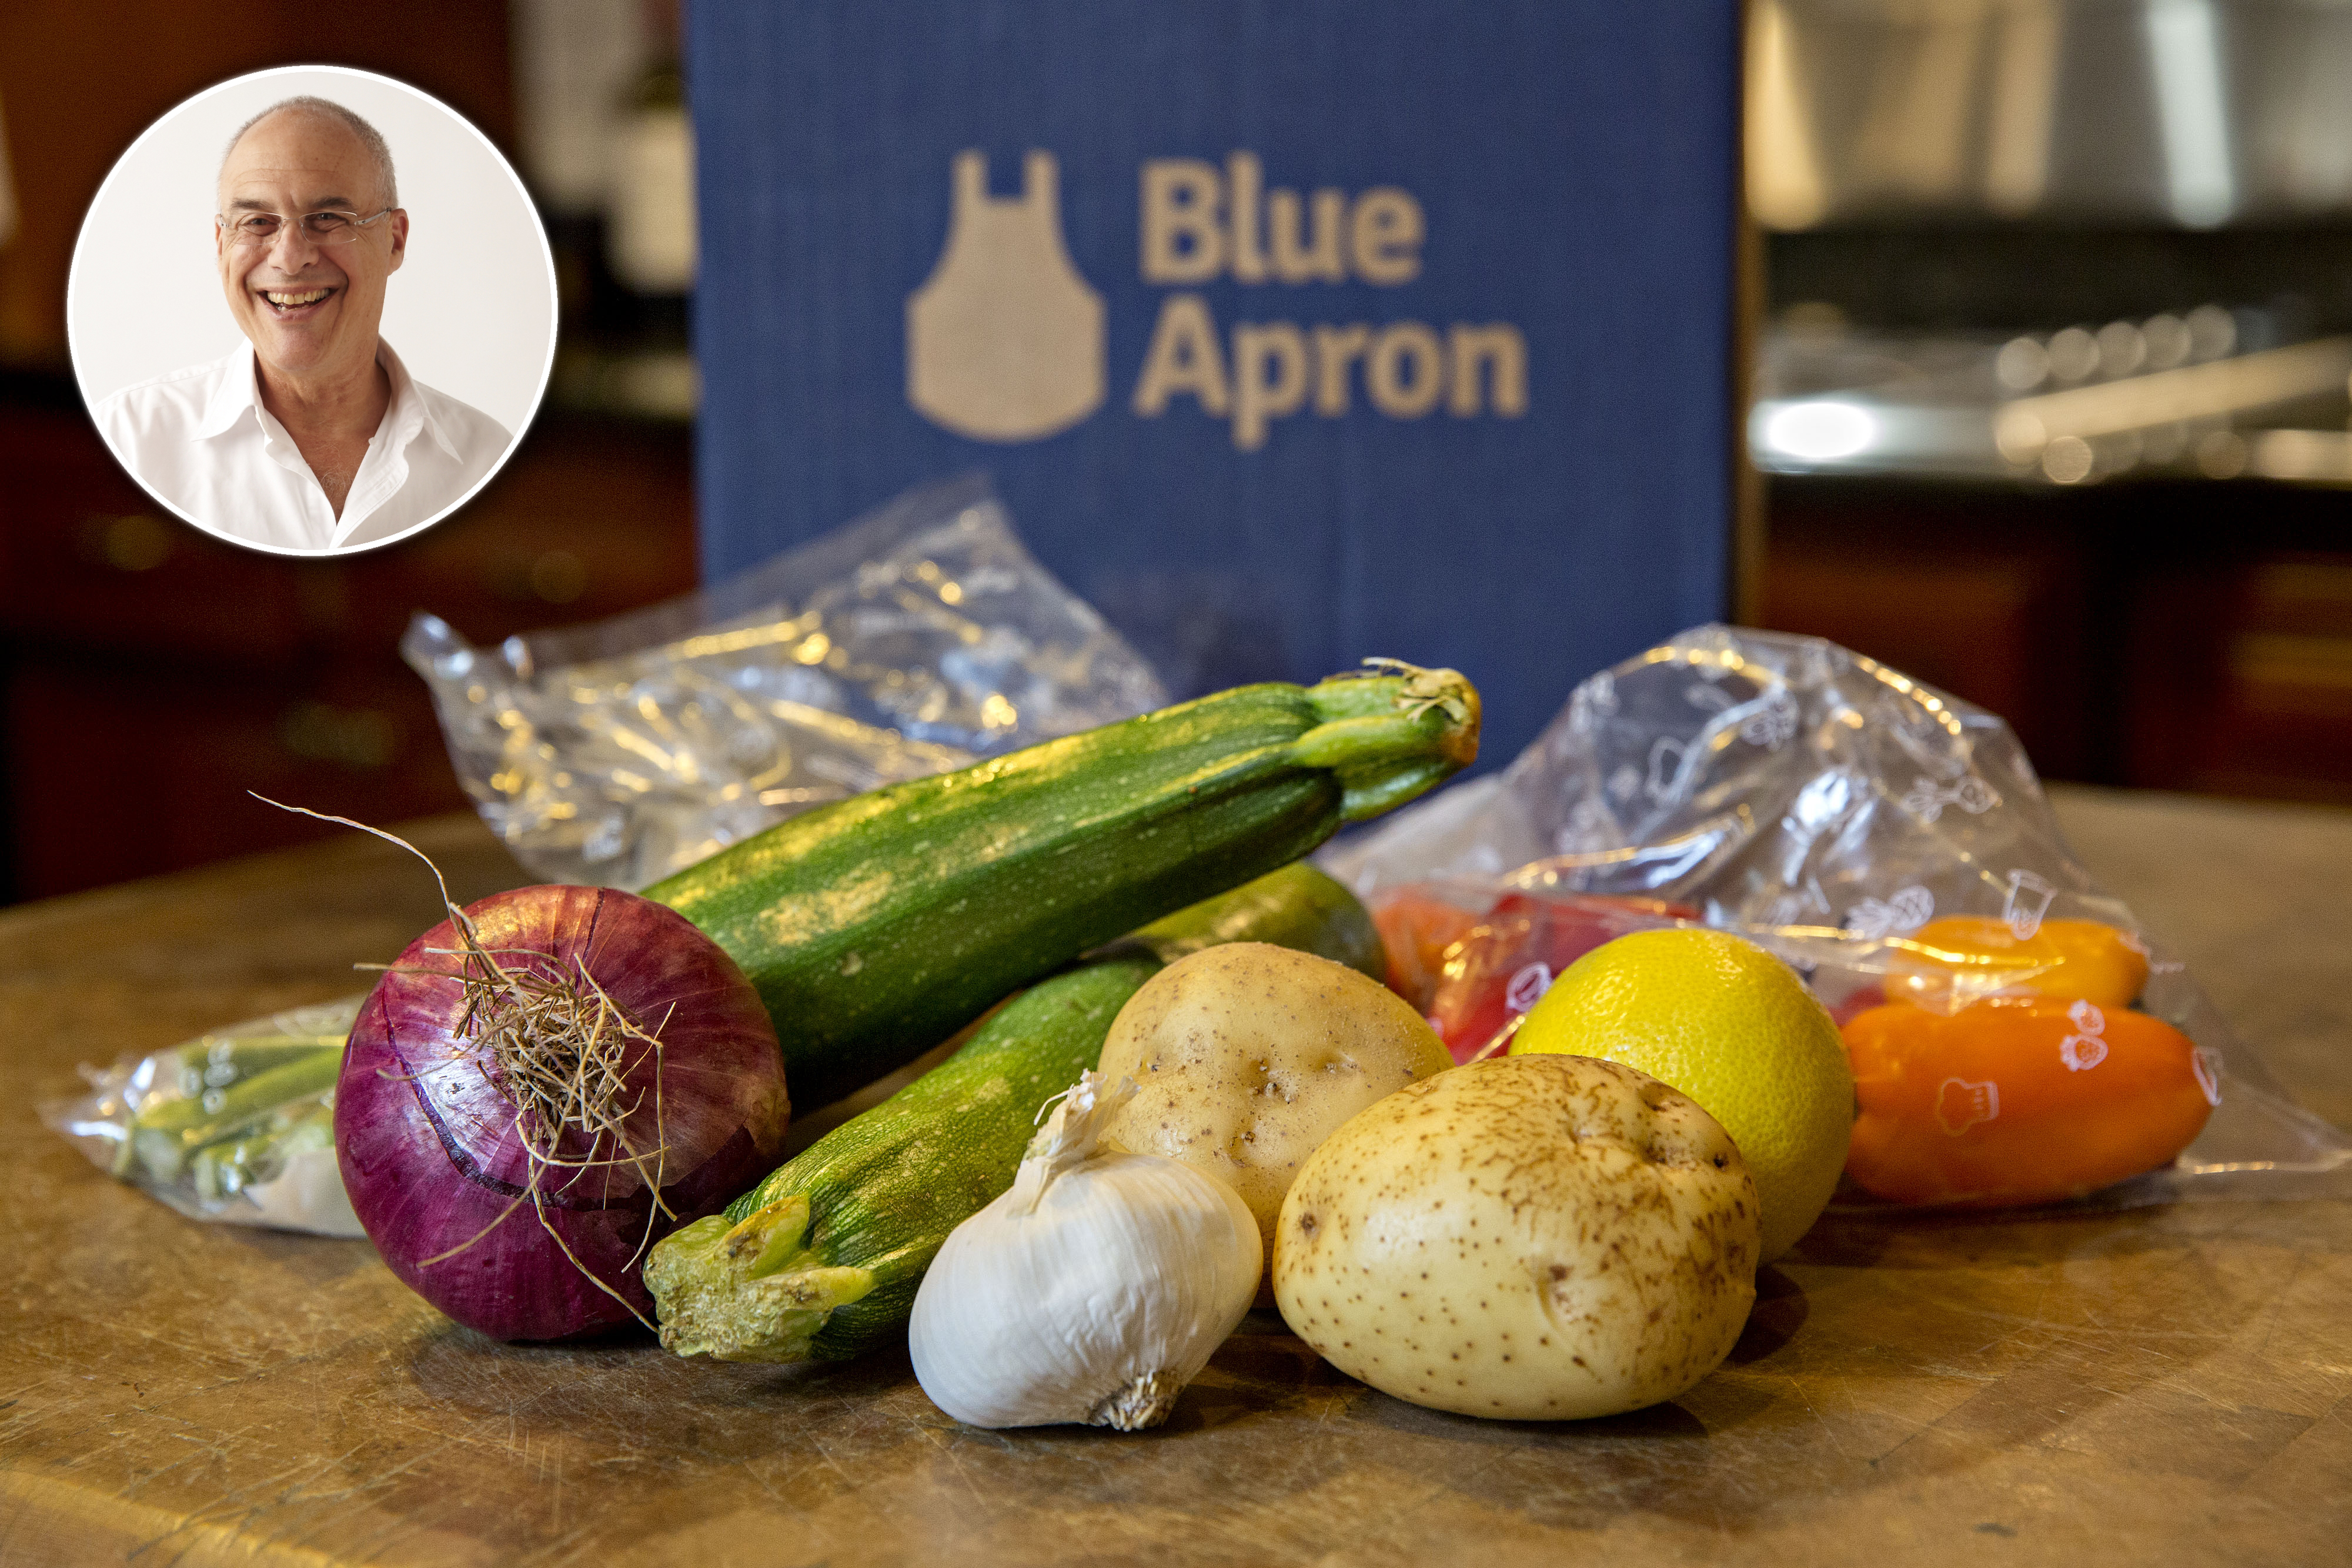 Mark Bittman: Here's Why Meal Kits Like Blue Apron Are a Waste of Your Money